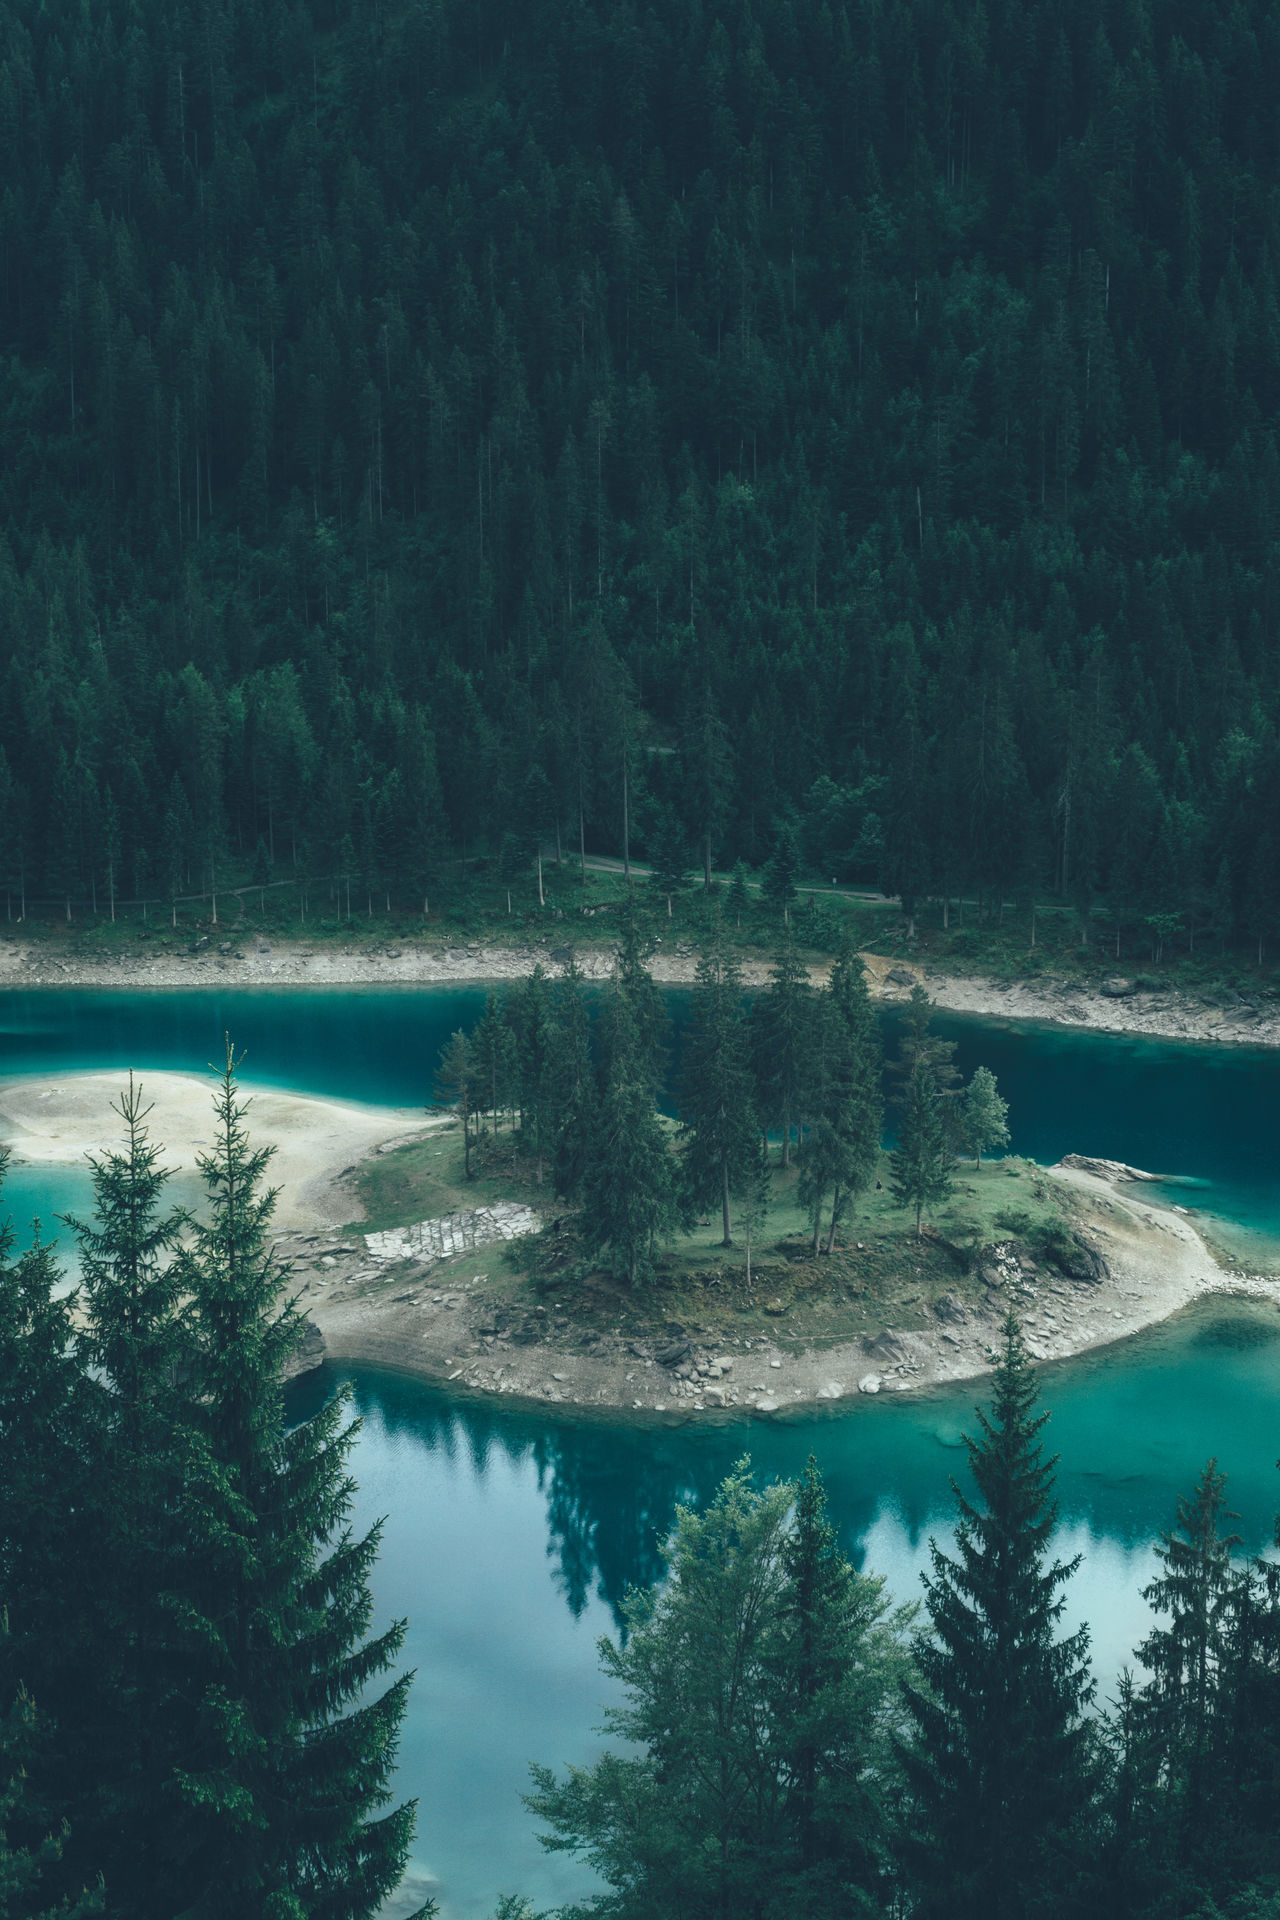 Turquoise lake Caumasee hidden in a forrest in Switzerland Beauty In Nature Caumasee Film Fine Art Photography Folk Forrest Graubünden Idyllic Lake Landscape Nature Oasis Outdoors Peace Peaceful Reflection Remote Schweiz Standing Water Switzerland Tranquil Scene Tranquility Tree VSCO Color Palette